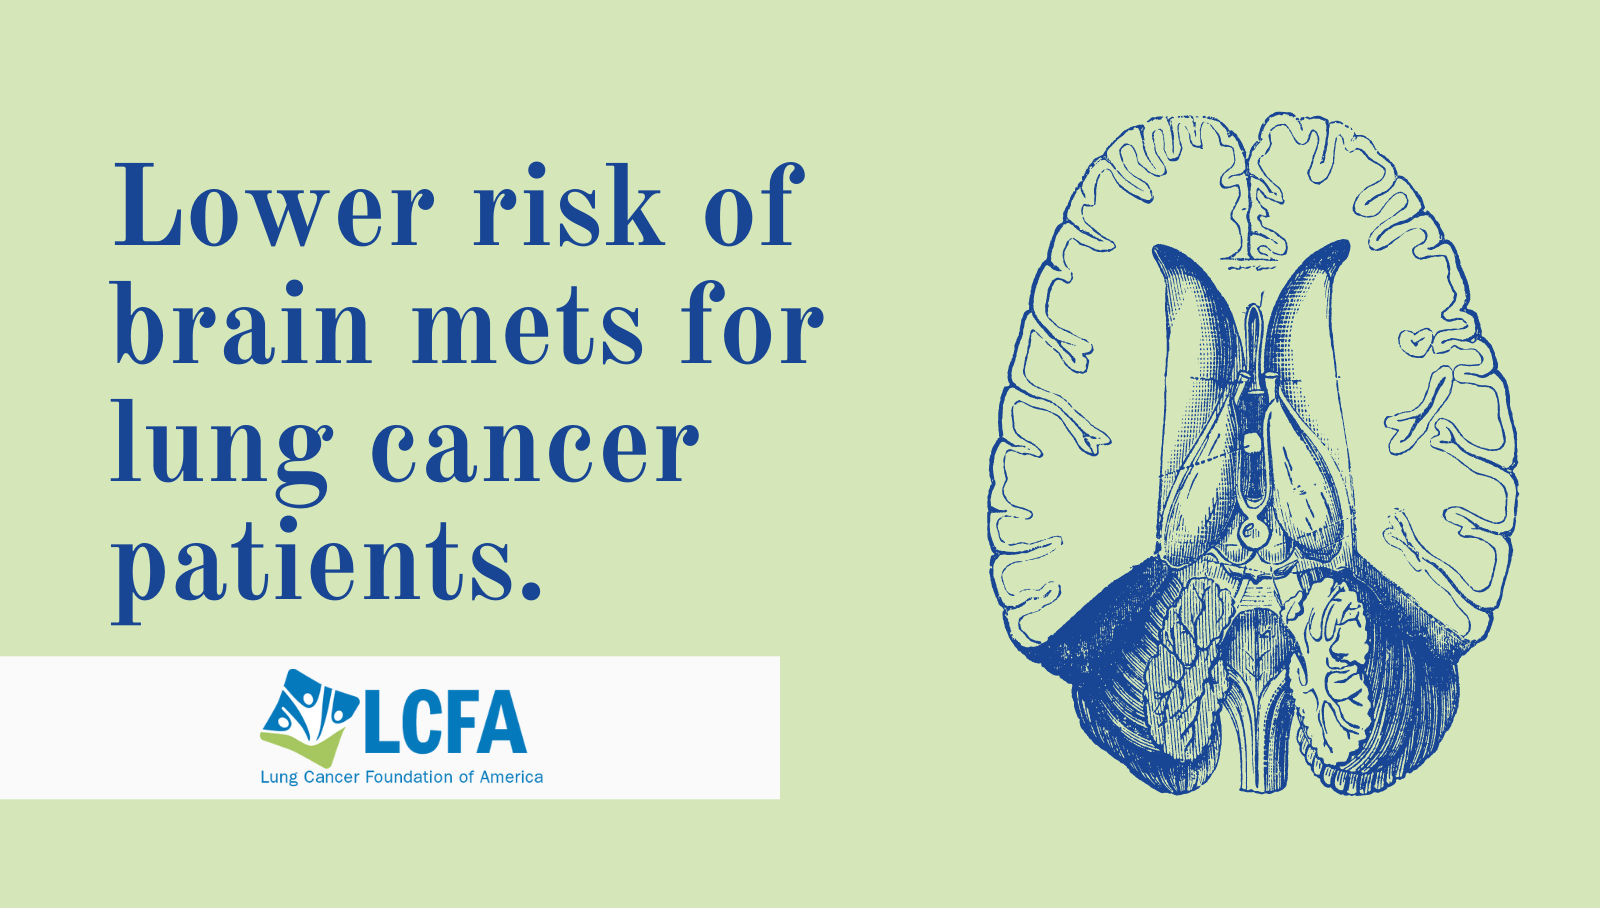 lower risk of brain mets for lung cancer patients